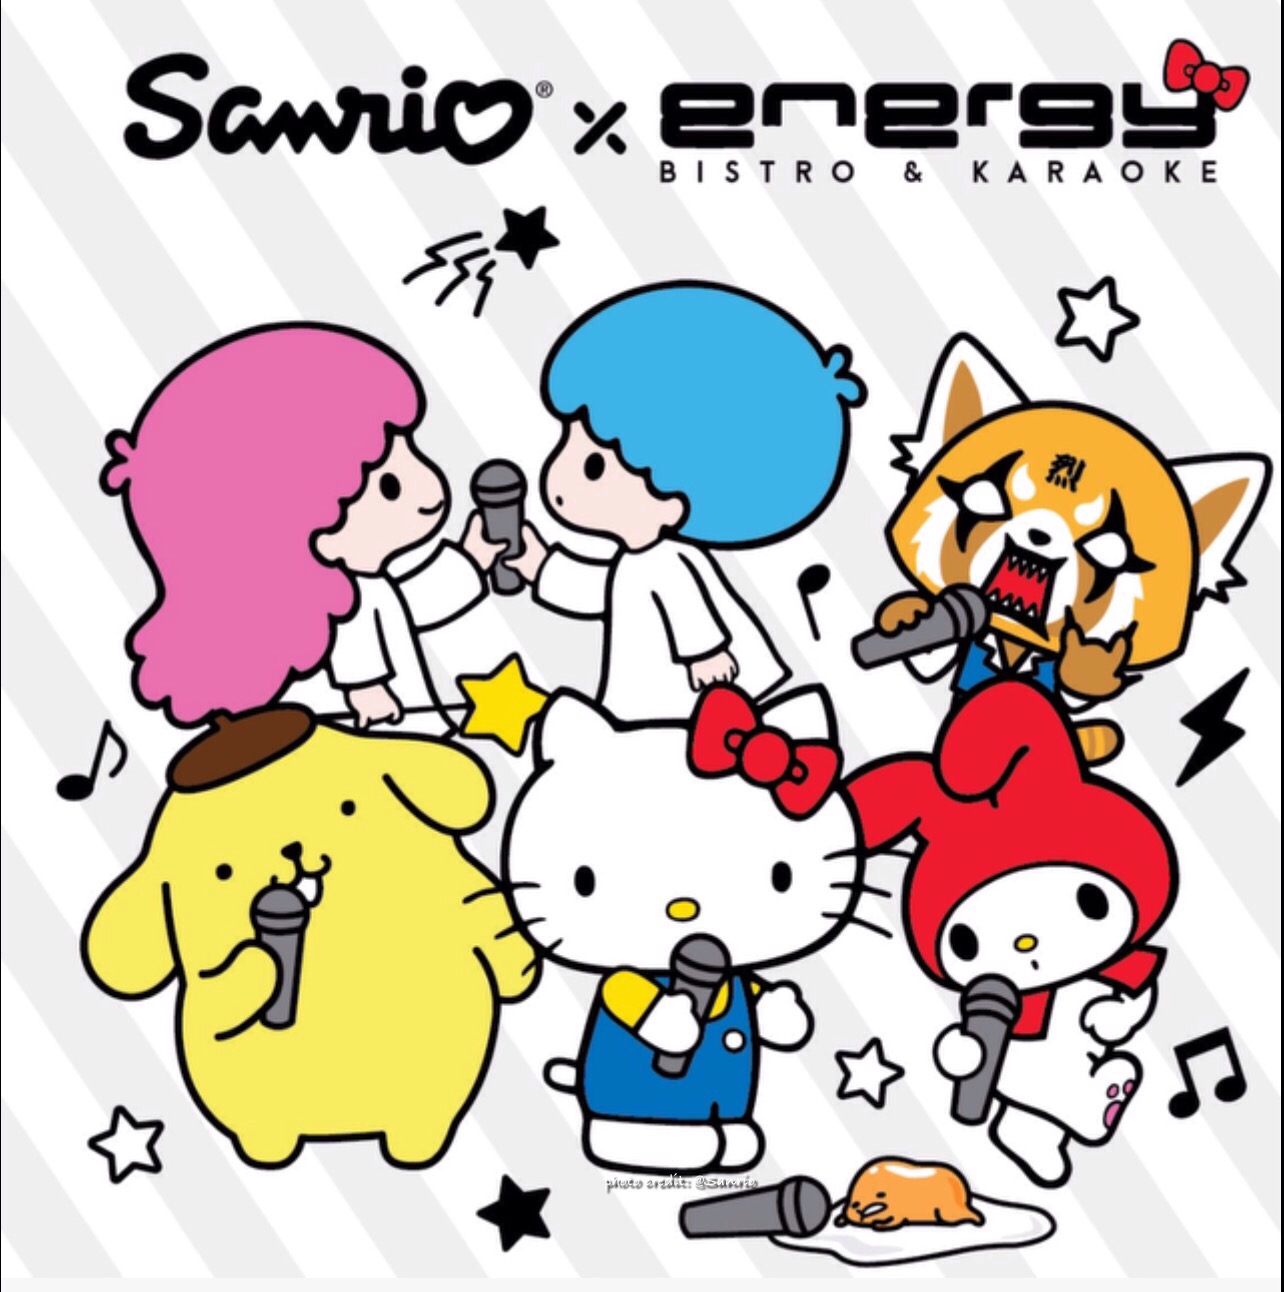 0d7f7425f9a14 ... two year partnership between Sanrio and Energy Bistro & Karaoke. Energy  Bistro & Karaoke will have cute karaoke rooms featuring our favorite Hello  Kitty ...